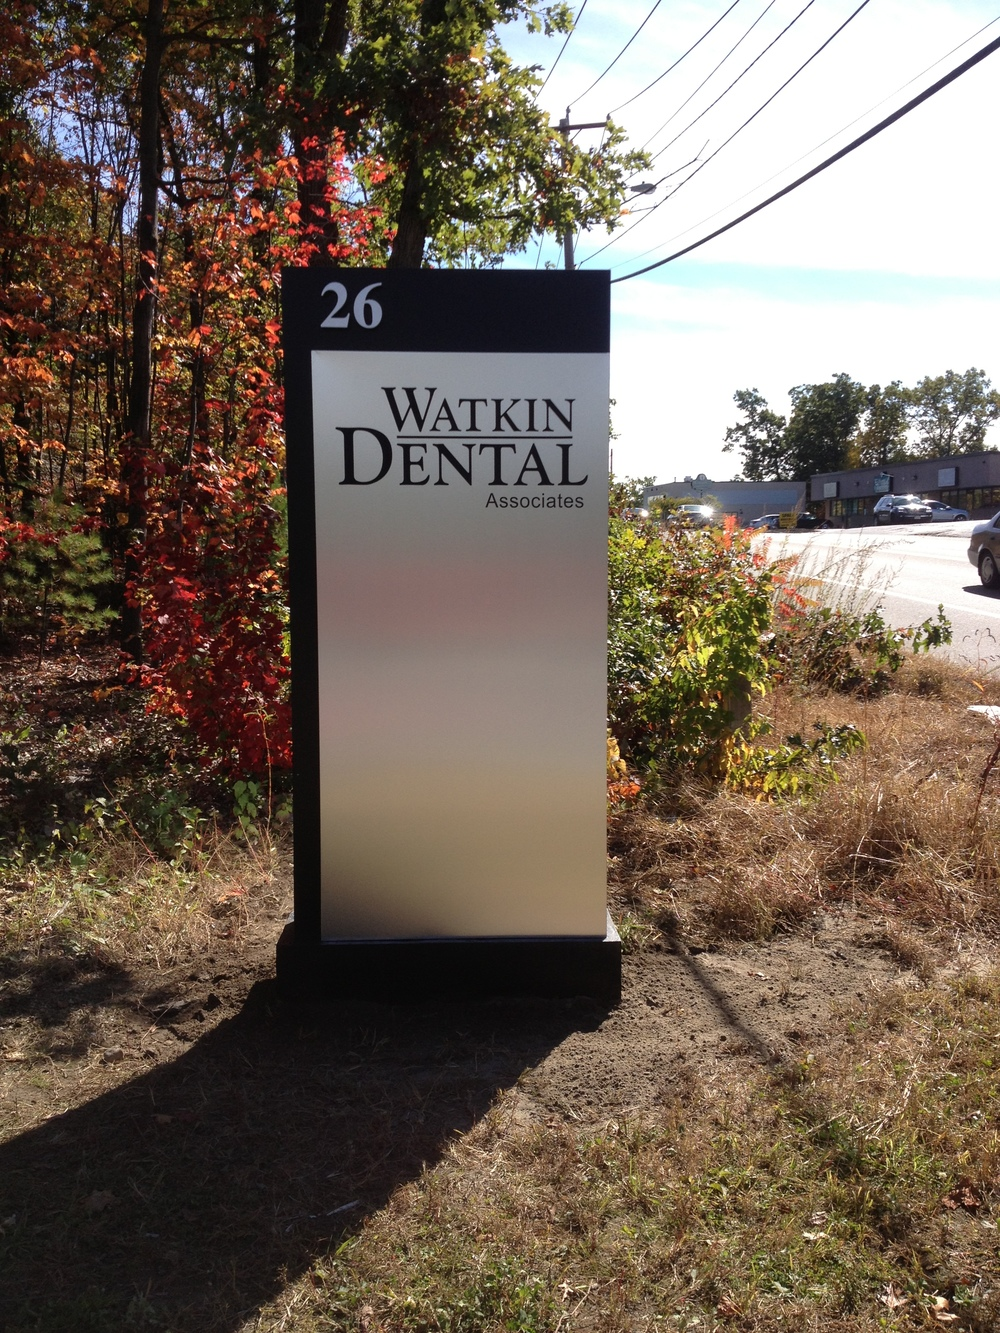 Watkin Dental.JPG